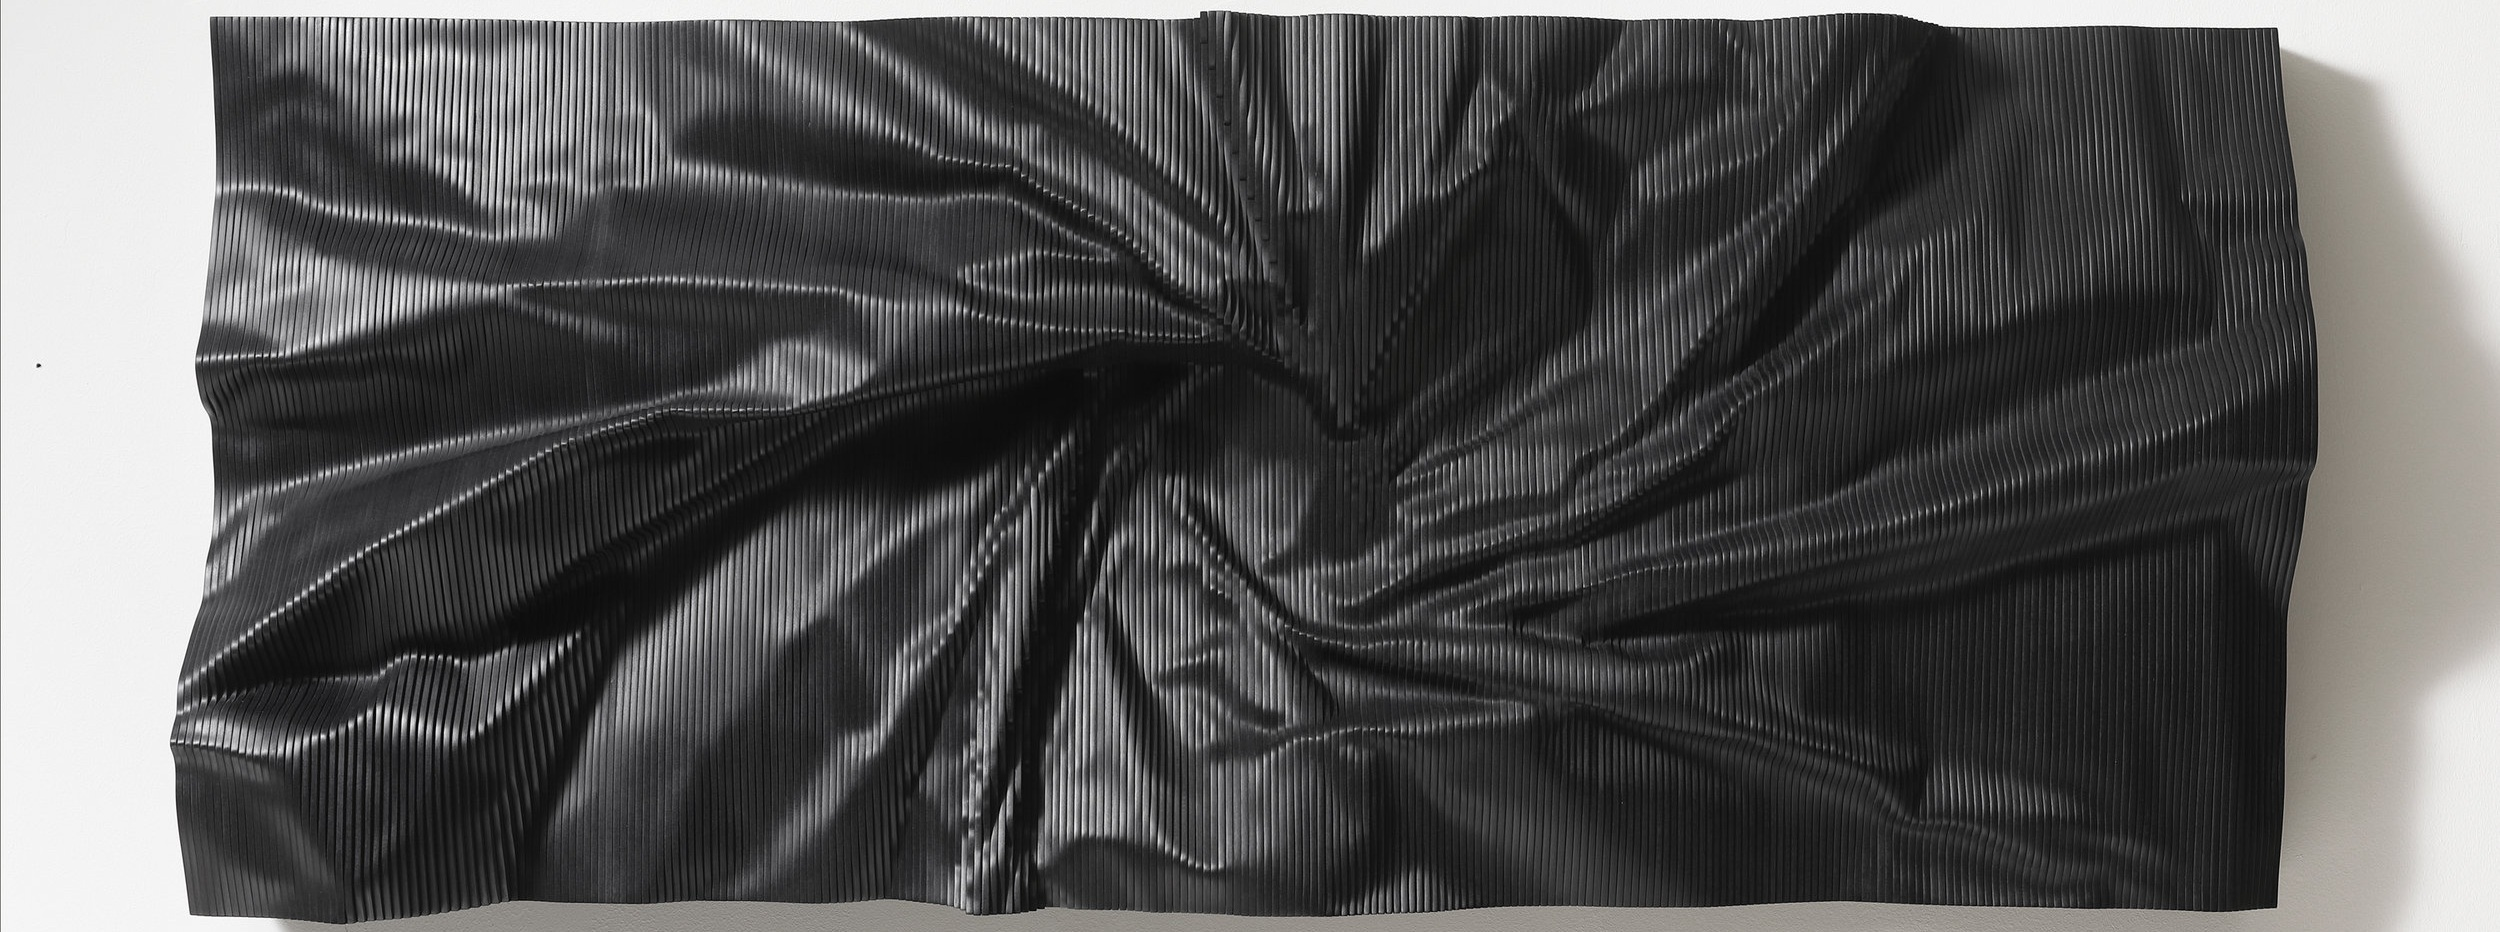 wall hanging sculpture made from engineered wood, black by cha jong rye